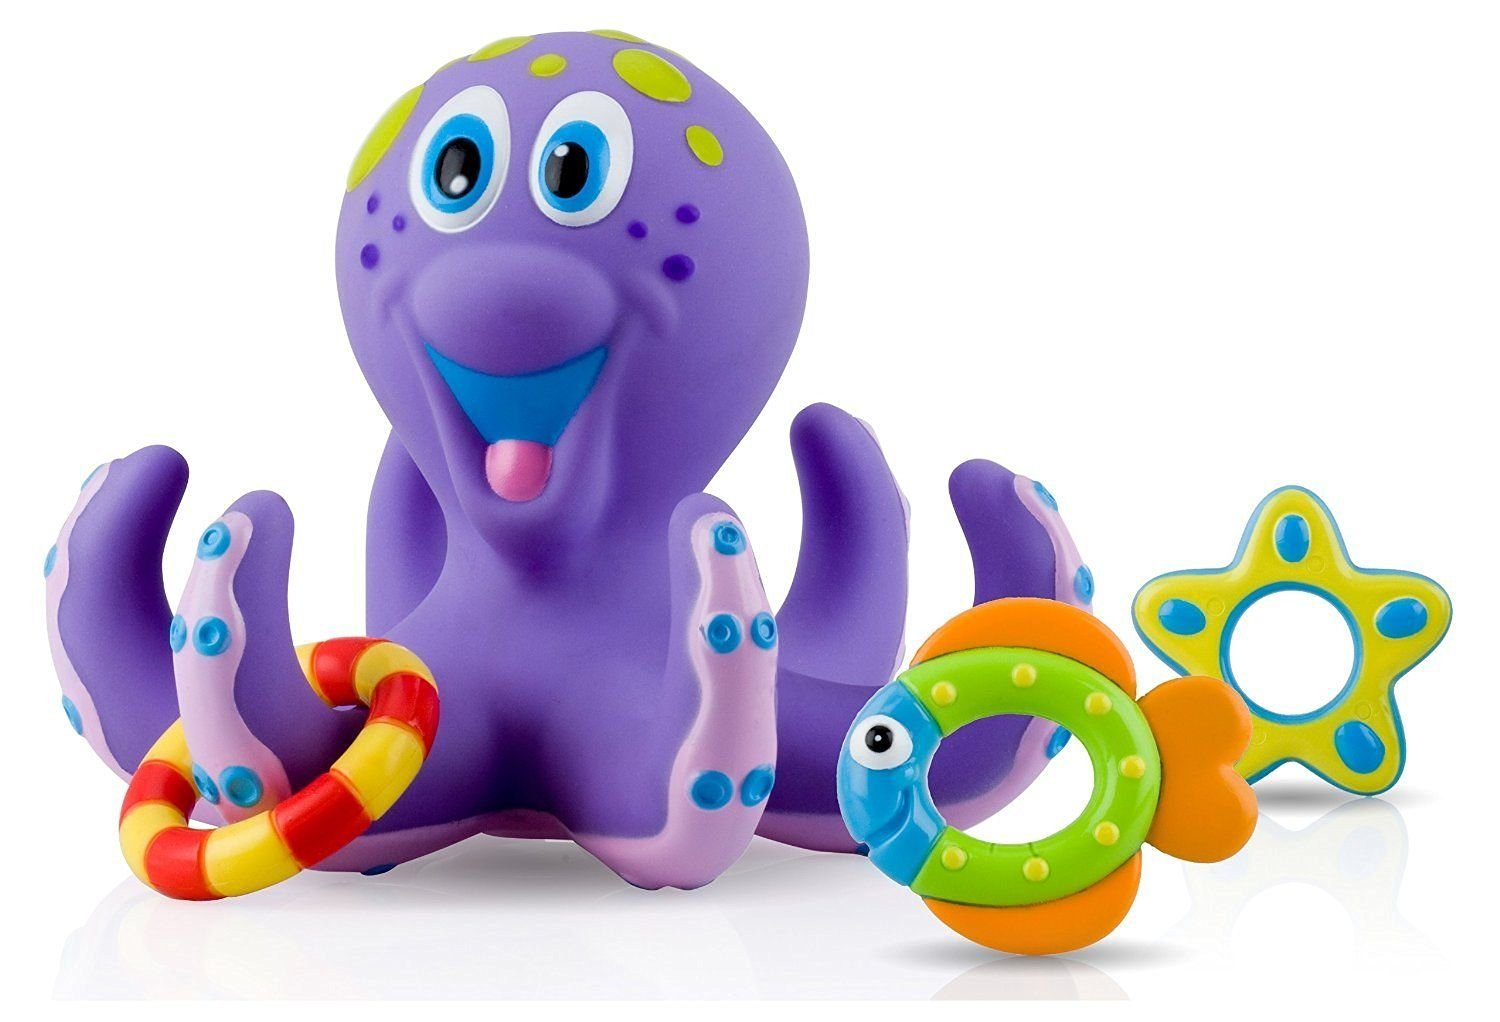 Bath Toy For Toddlers Tub Baby Nuby Octopus Bath Time Toss